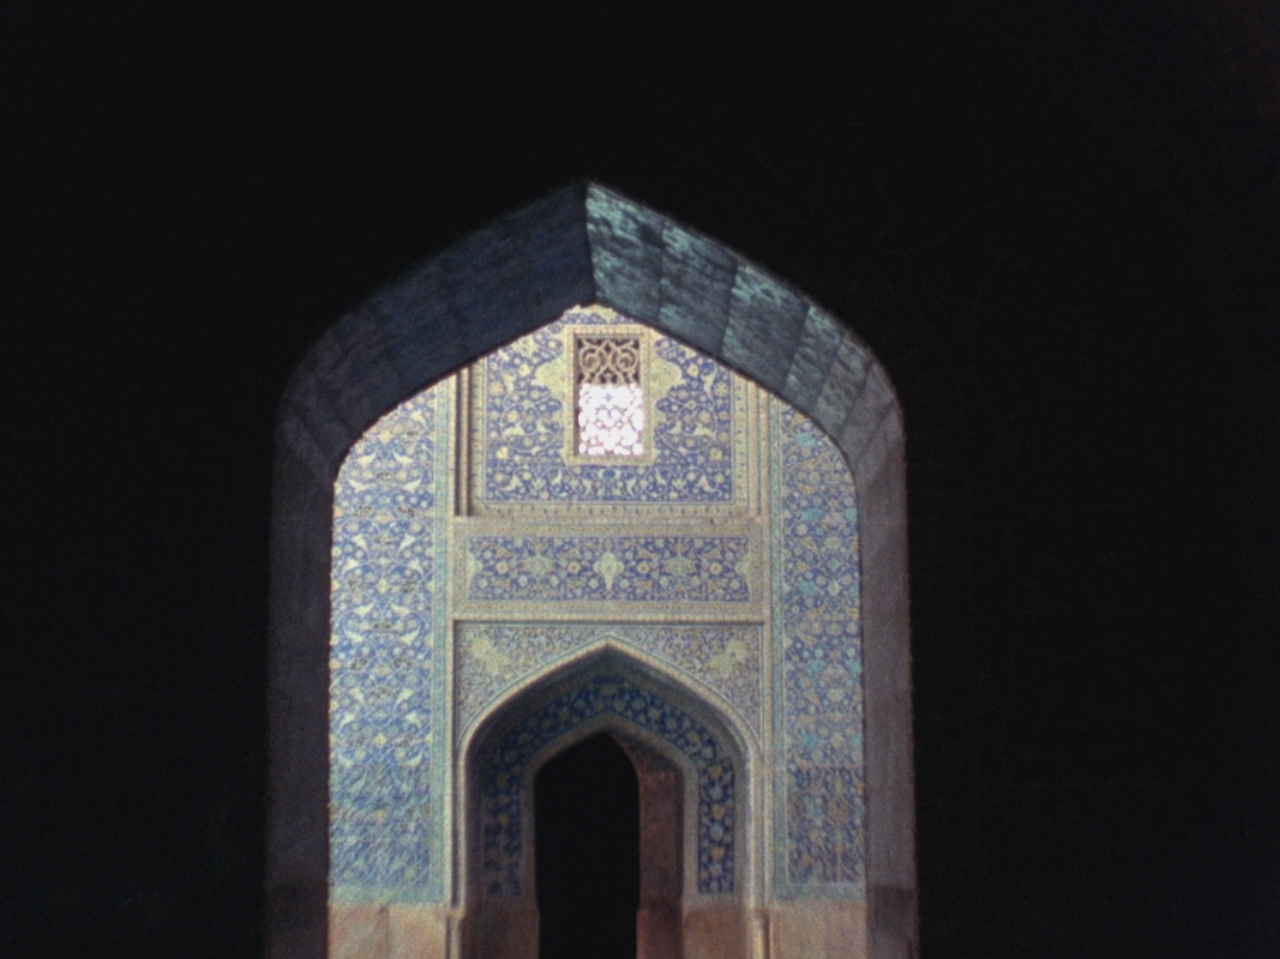 Remembering the Pentagons     Azadeh Navai   2015  /  23 minutes  /  Iran/USA  /  16mm / sound  A slow, rhythmic and contemplative journey into filmmaker Azadeh Navai's earliest childhood memories. With an old 16mm Bolex and a hand-made pinhole camera, Navai returns to Tehran and Esfahan, Iran, where the perceptions and recollections of places, emotions, and scents serve as vehicles through which she exposes a deeply personal landscape. She asks - what is the texture of memory? In what ways does time - the light, wind, and air of history - wear upon the monuments and the images of the past? Her camera, gliding through mosques and the heady wares of a bazaar, provides grounding to narrative themes of childhood wonder and familial tragedy. But, as in memory, there is trouble in the image. The convulsions of recollection are perceptible even in the shifting grains of the film image - kaleidoscopic in their geometries of instability and flux.  Born in Tehran during the Iran-Iraq war, Navai seeks to access a time of personal turmoil both for her family and for her birth country in this poetic capturing of place, history and memory.